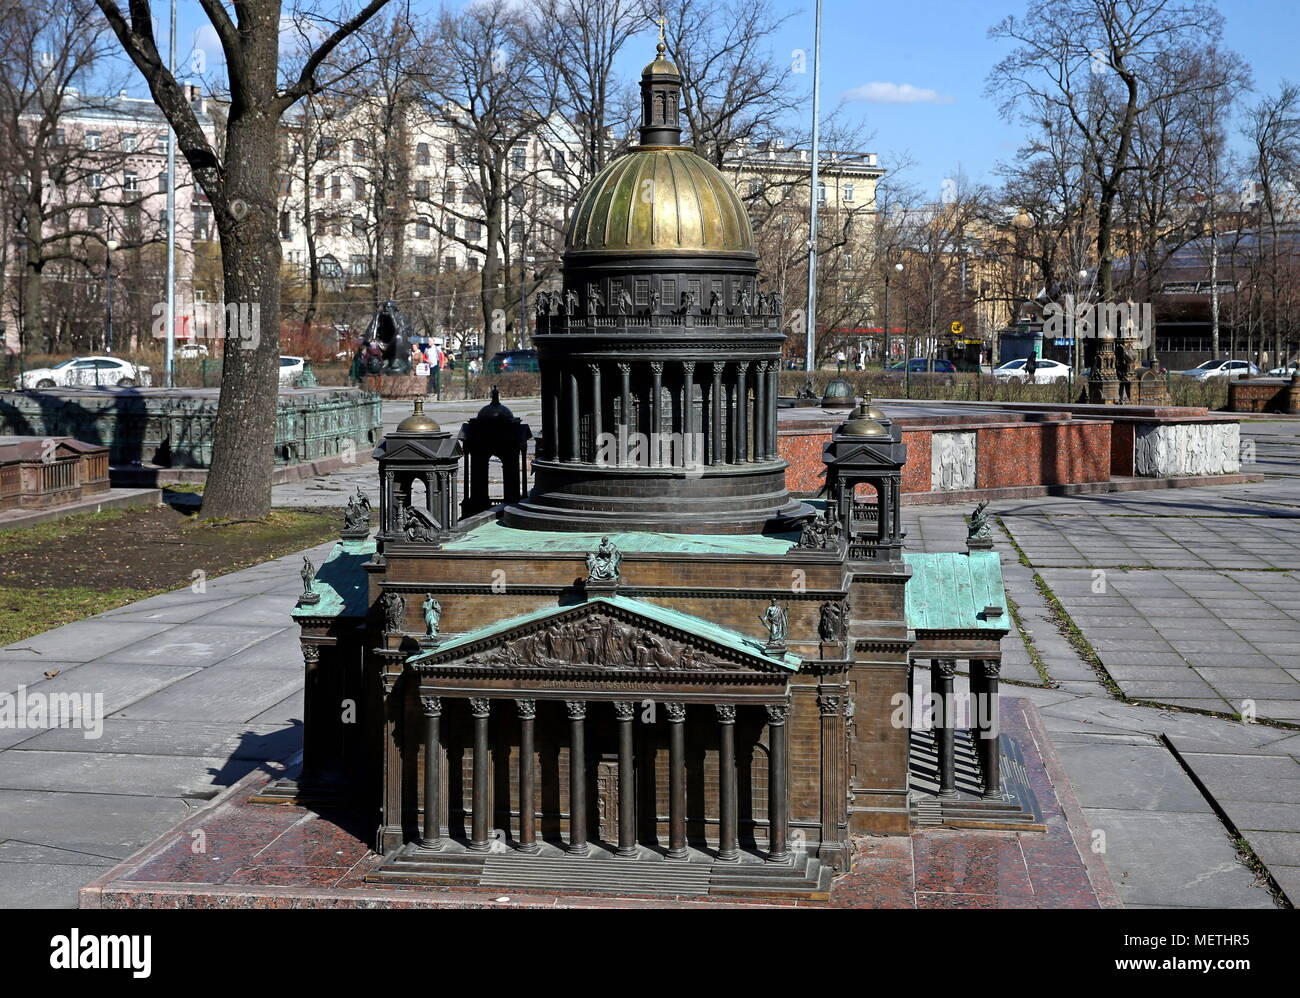 St Petersburg, Russia. 19th Apr, 2018. ST PETERSBURG, RUSSIA - APRIL 19, 2018: A scale model of St Isaac Cathedral at the Mini City center in Alexander Park. Alexander Demianchuk/TASS Credit: ITAR-TASS News Agency/Alamy Live News Stock Photo